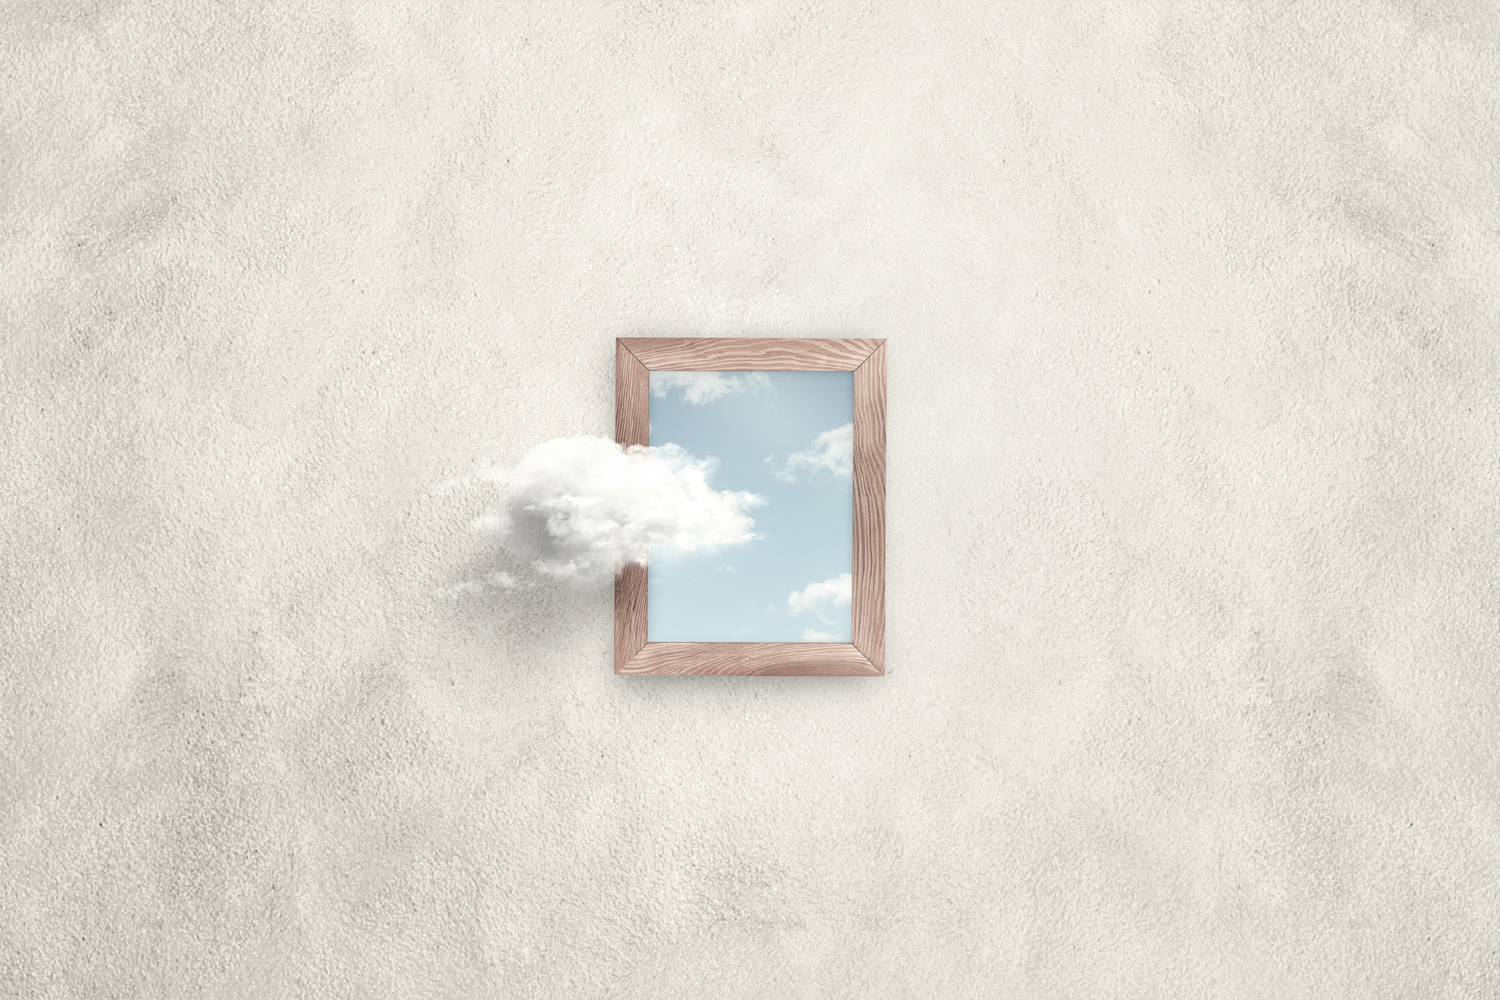 A window is centered in an otherwise blank view, offering a scenic view of a blue sky with a few clouds, while one cloud from outside drifts into the room.